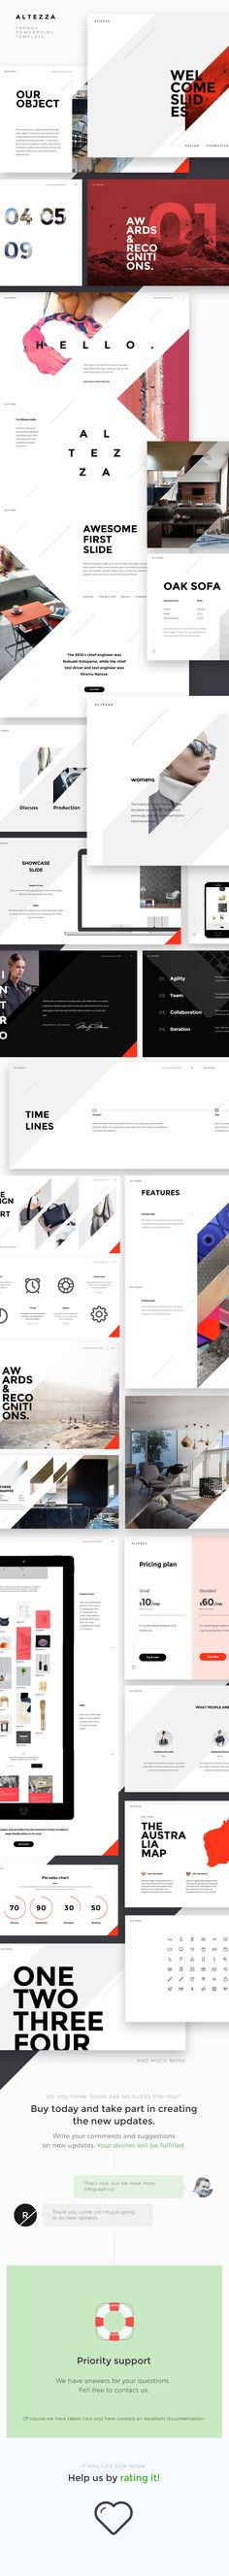 ALTEZZA PowerPoint Template by Rise Themes on @creativemarket